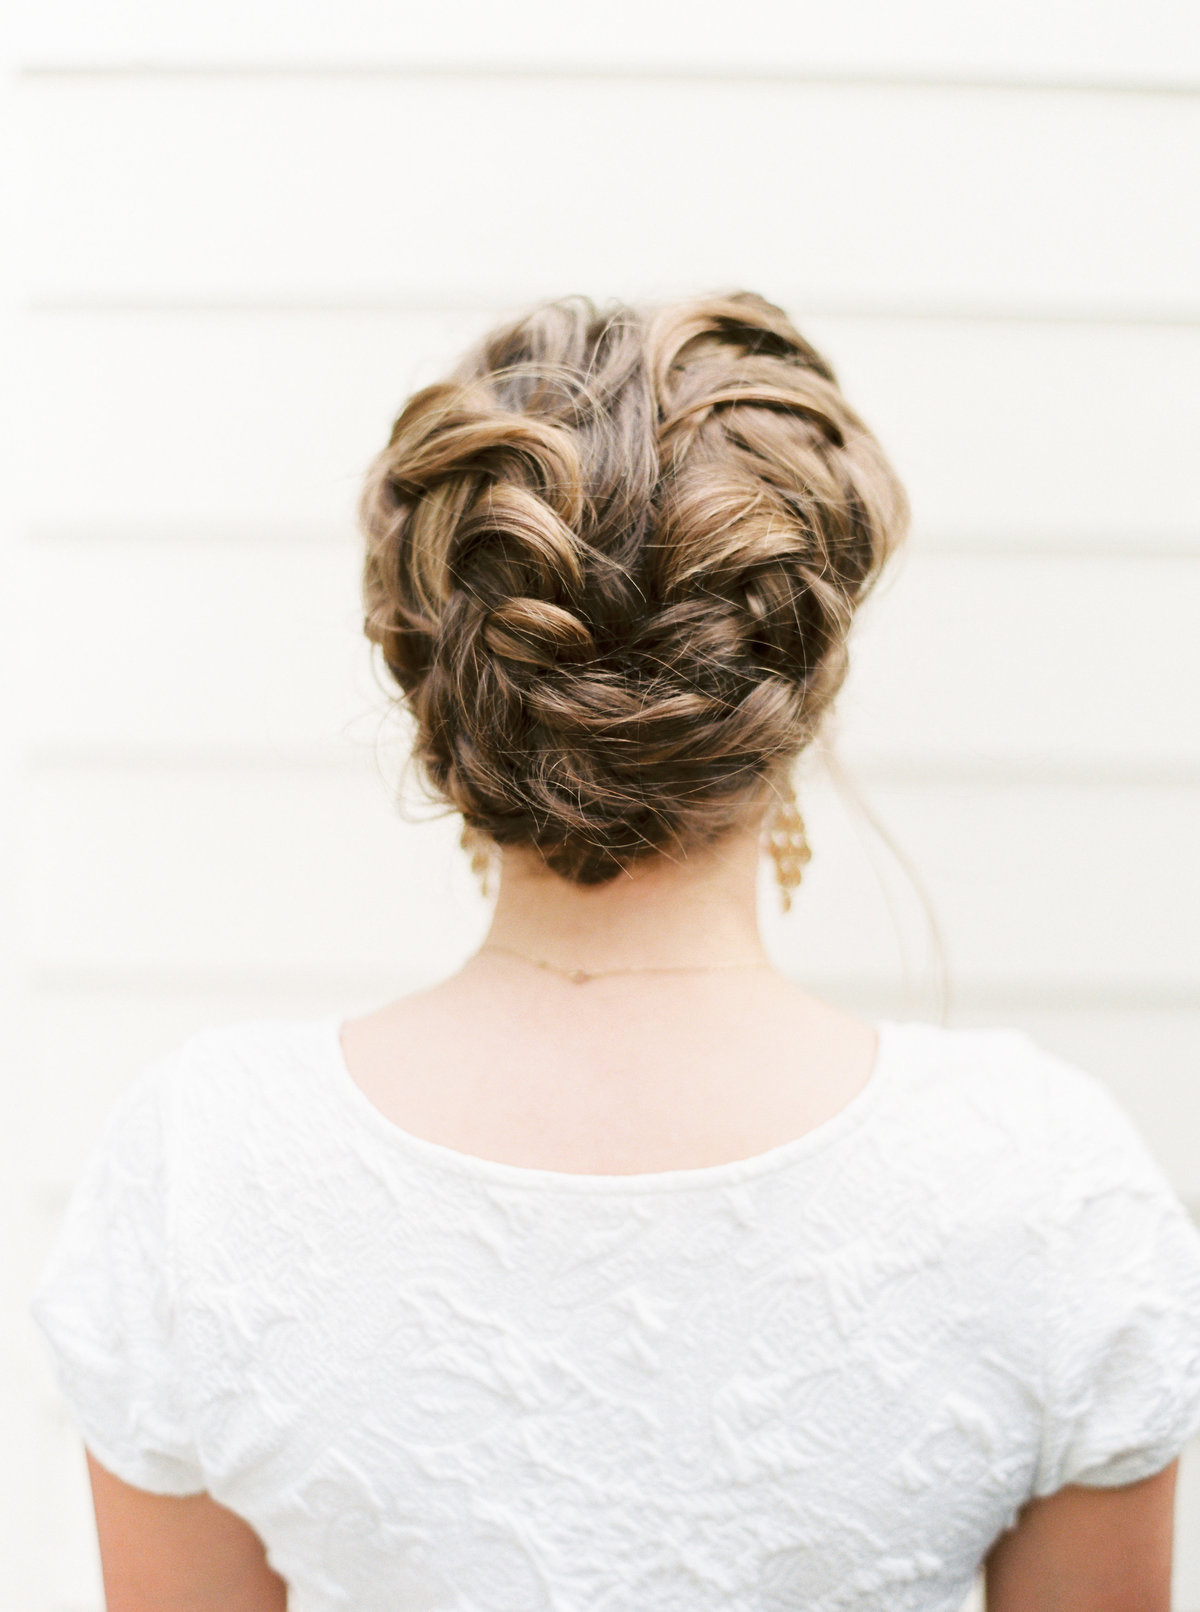 Backyard_Bridal_Brunch_Styled_Shoot-190